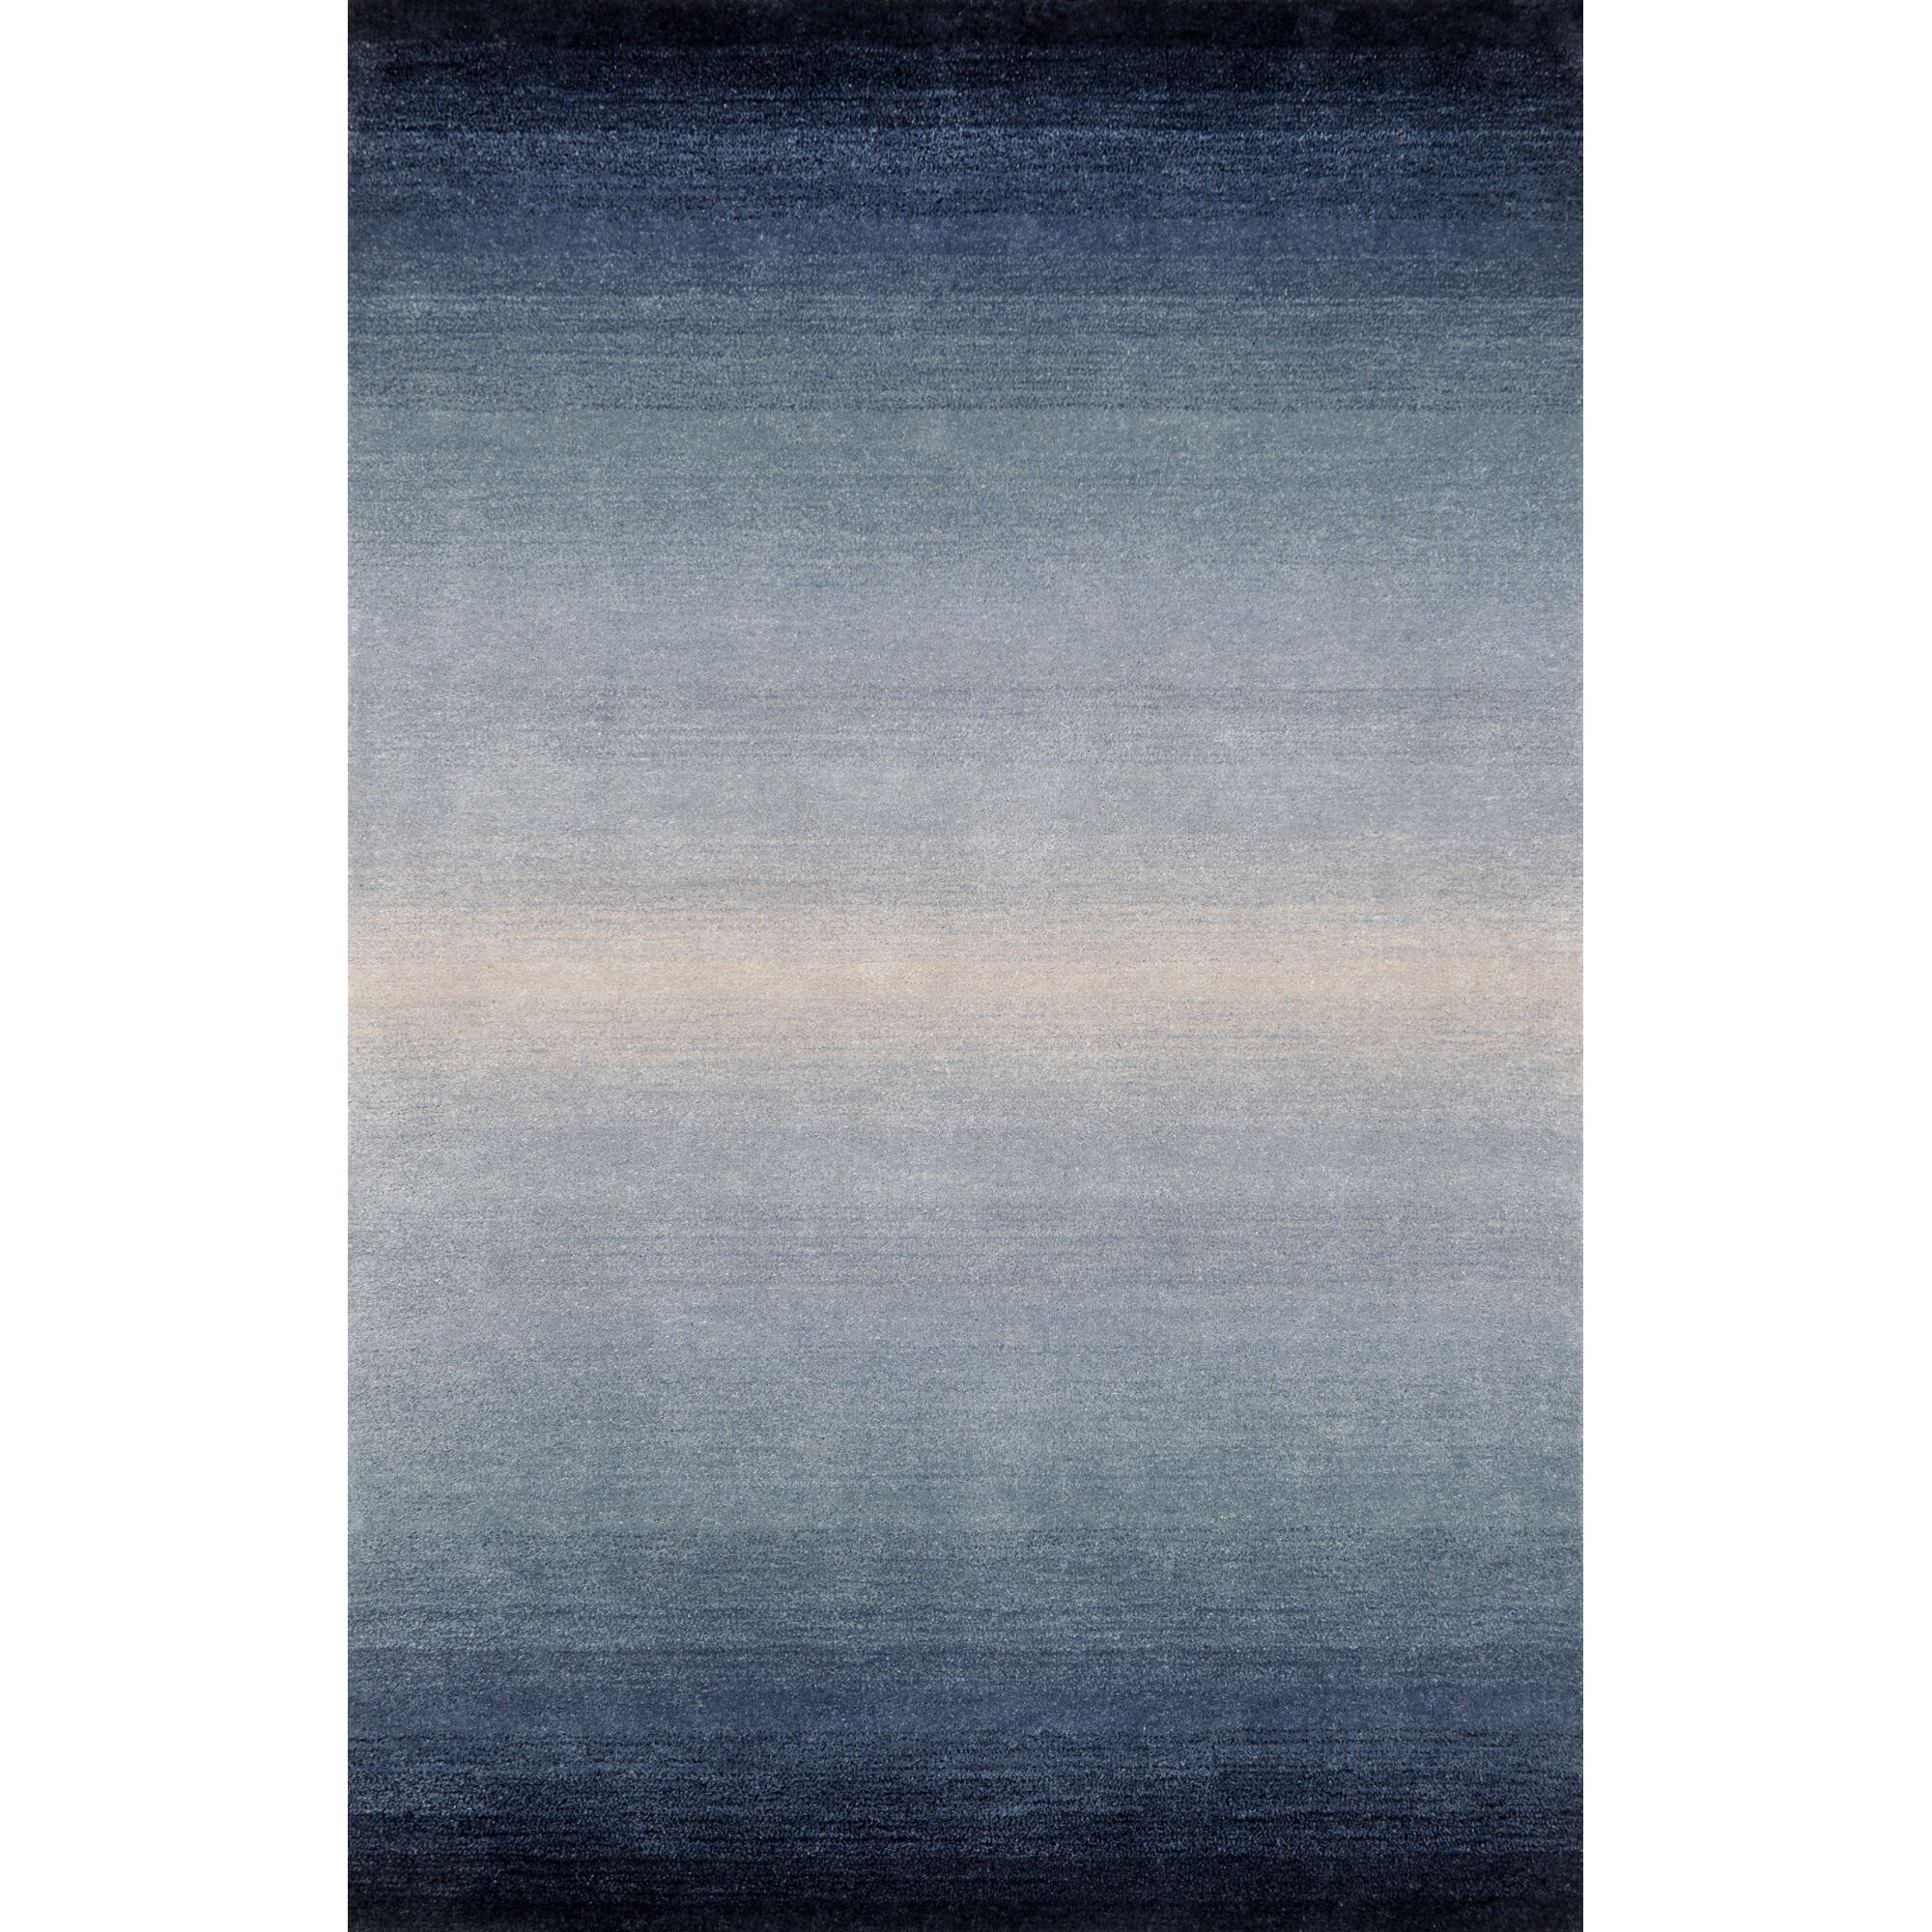 Belding Hand-Tufted Wool Blue Area Rug Rug Size: Round 8